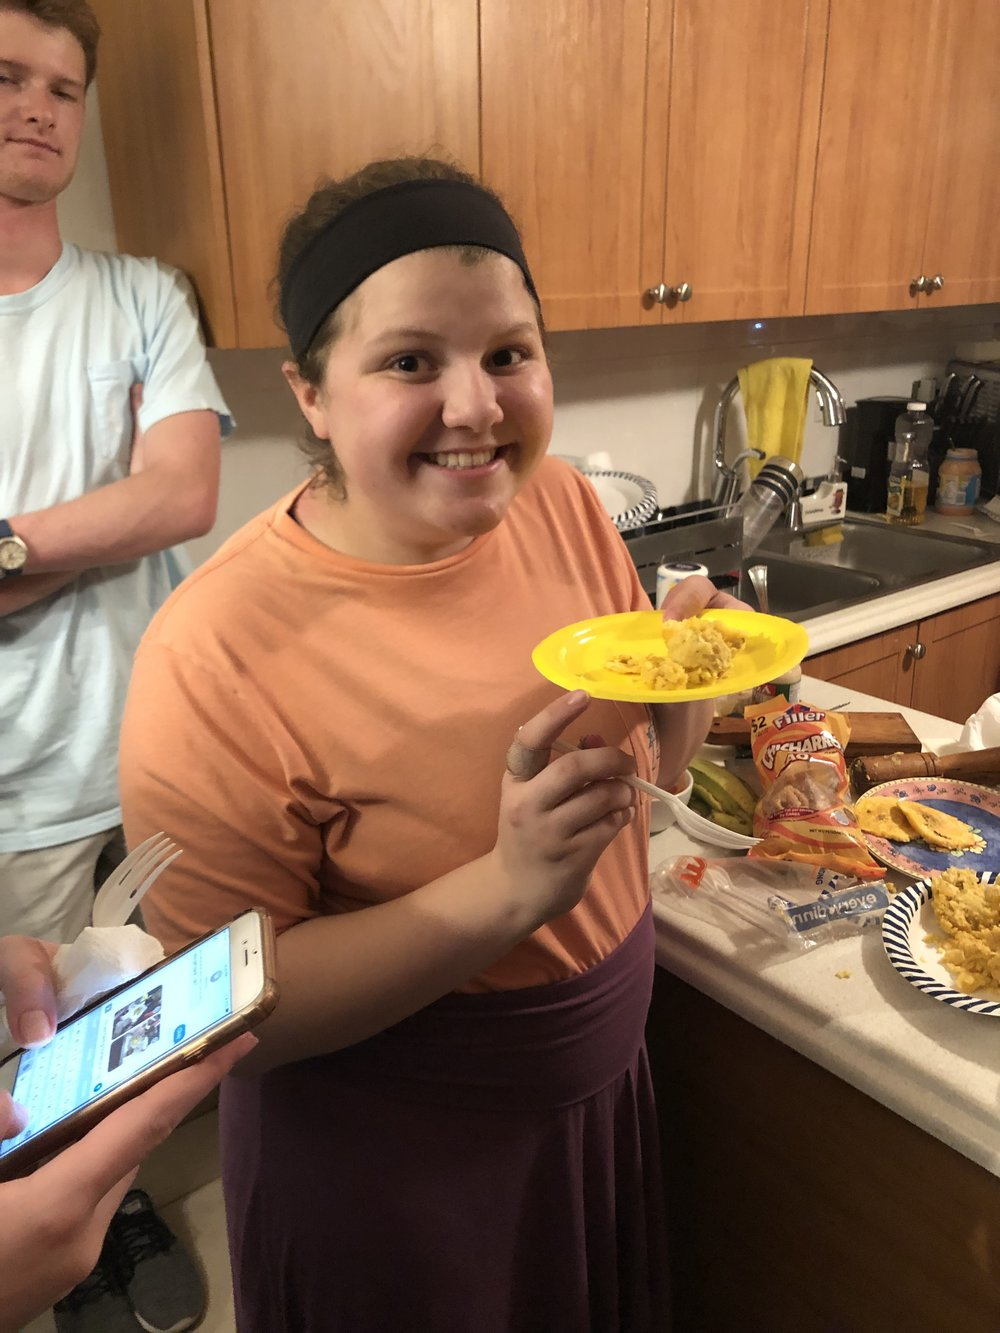 Taylor Vaughan hands out the Tostones that Ivonne generously made for the entire group